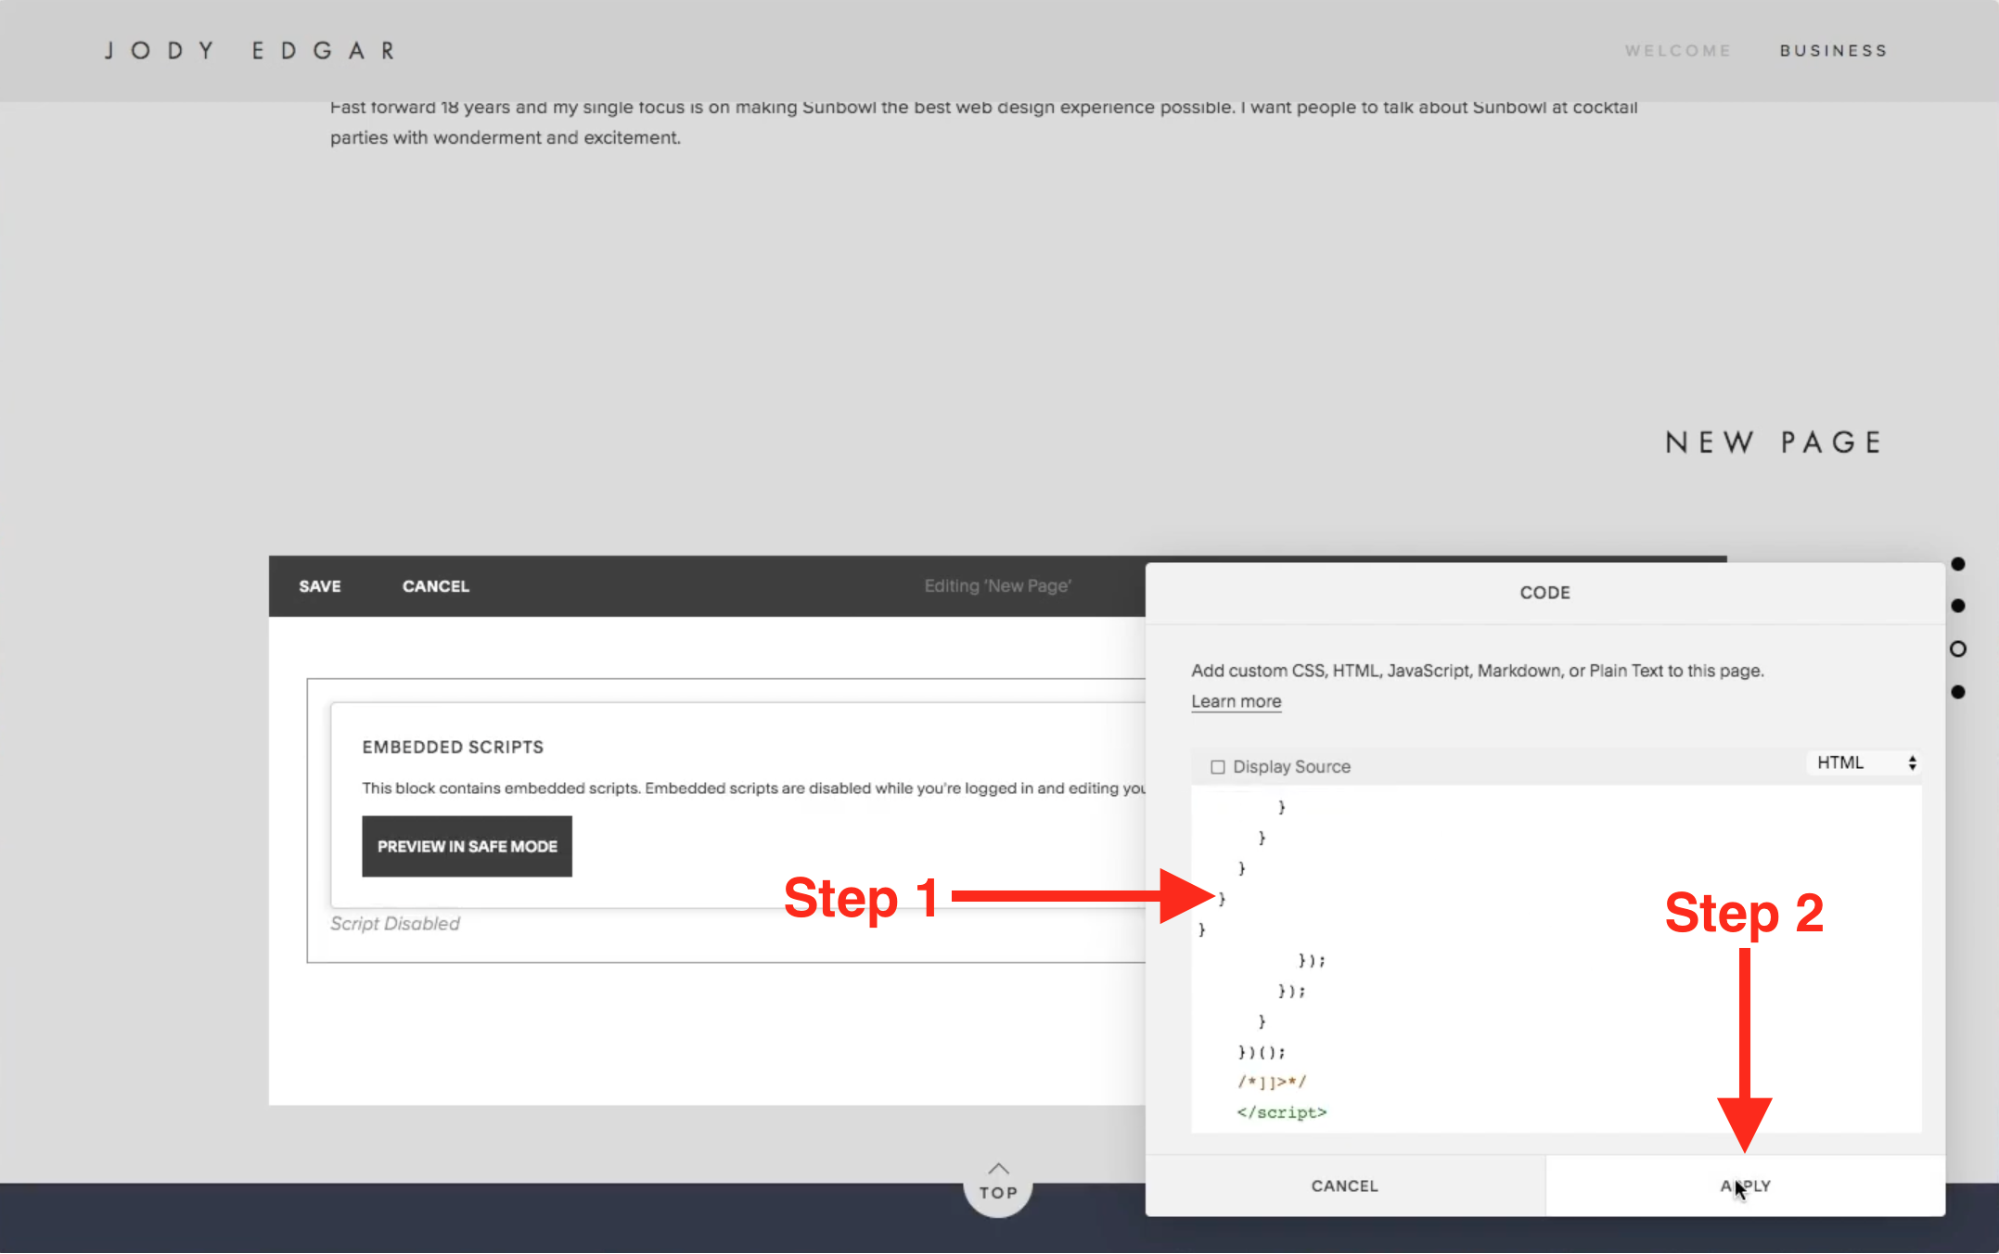 Paste the Shopify Buy Button code into the field and click Apply